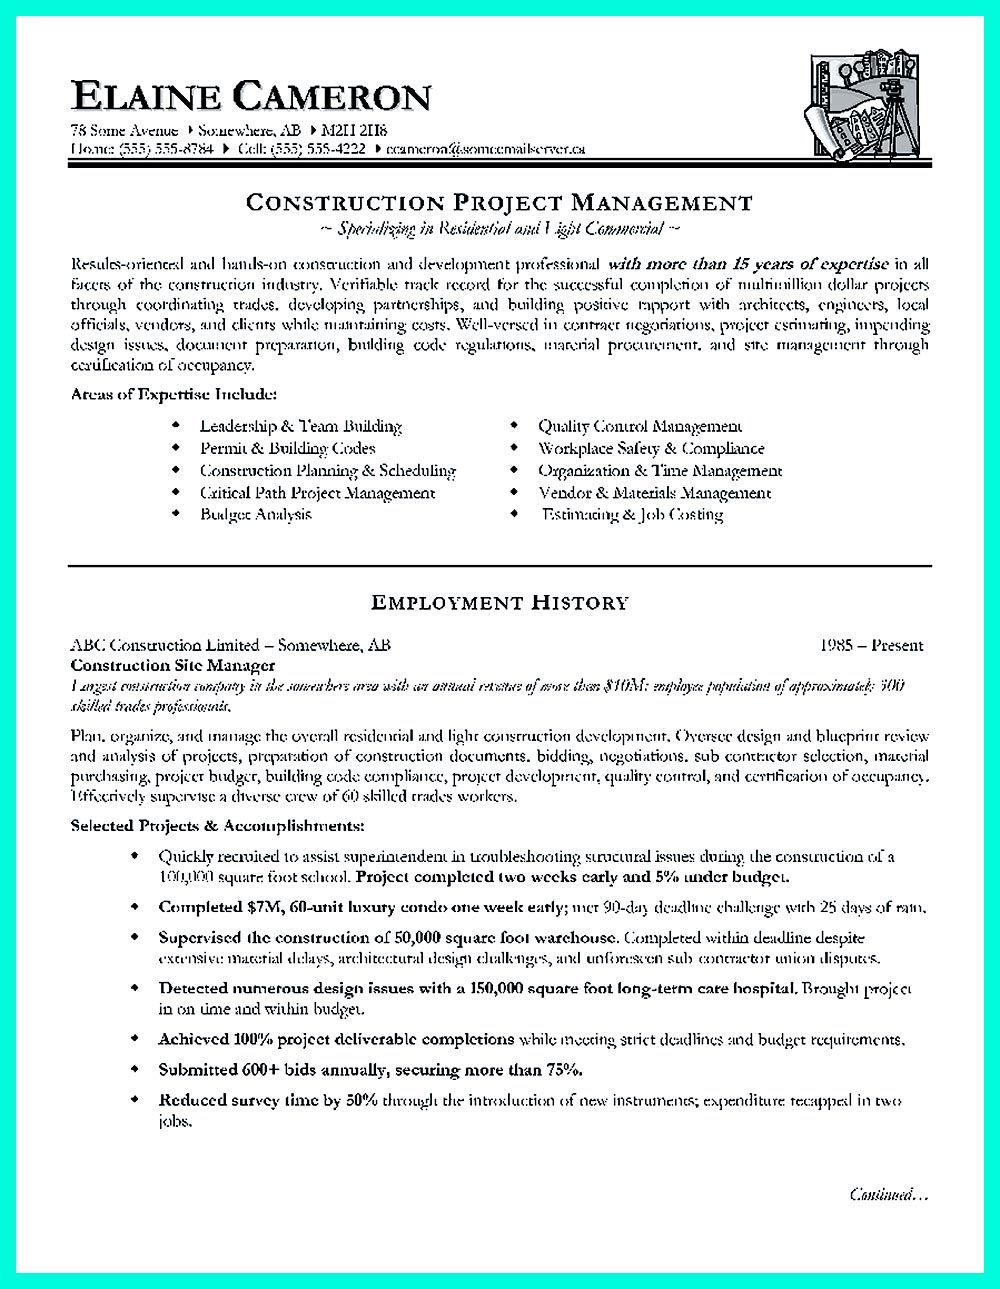 Construction Project Manager Resume For Experienced One Must Be Made With  Professional Profile, Education,